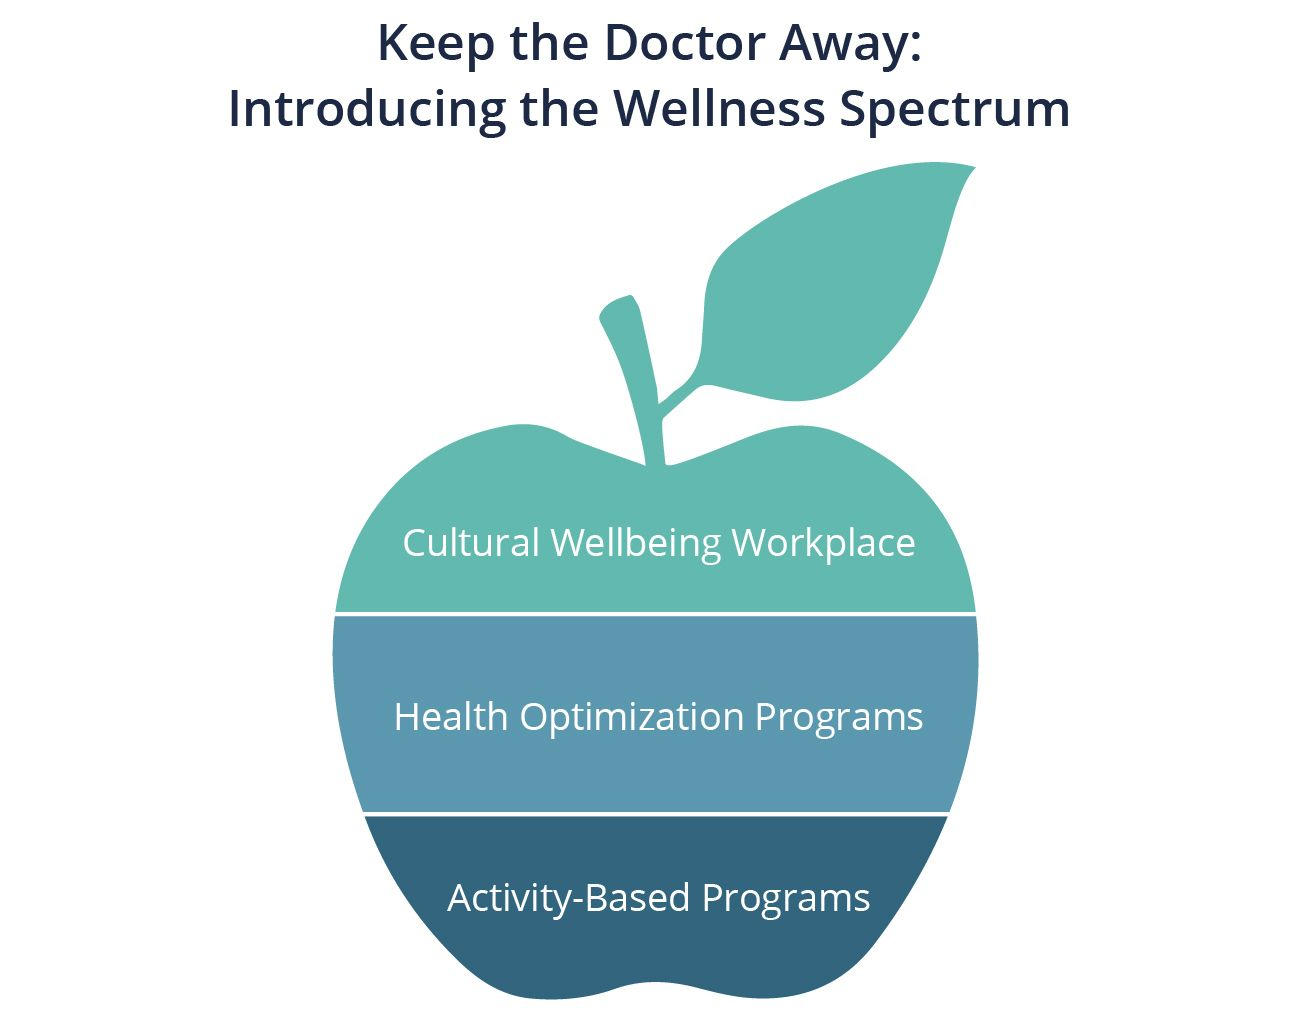 Illustration of an apple broken into three components of a wellness spectrum: Activity-based programs, health optimization programs, cultural wellbeing workplace